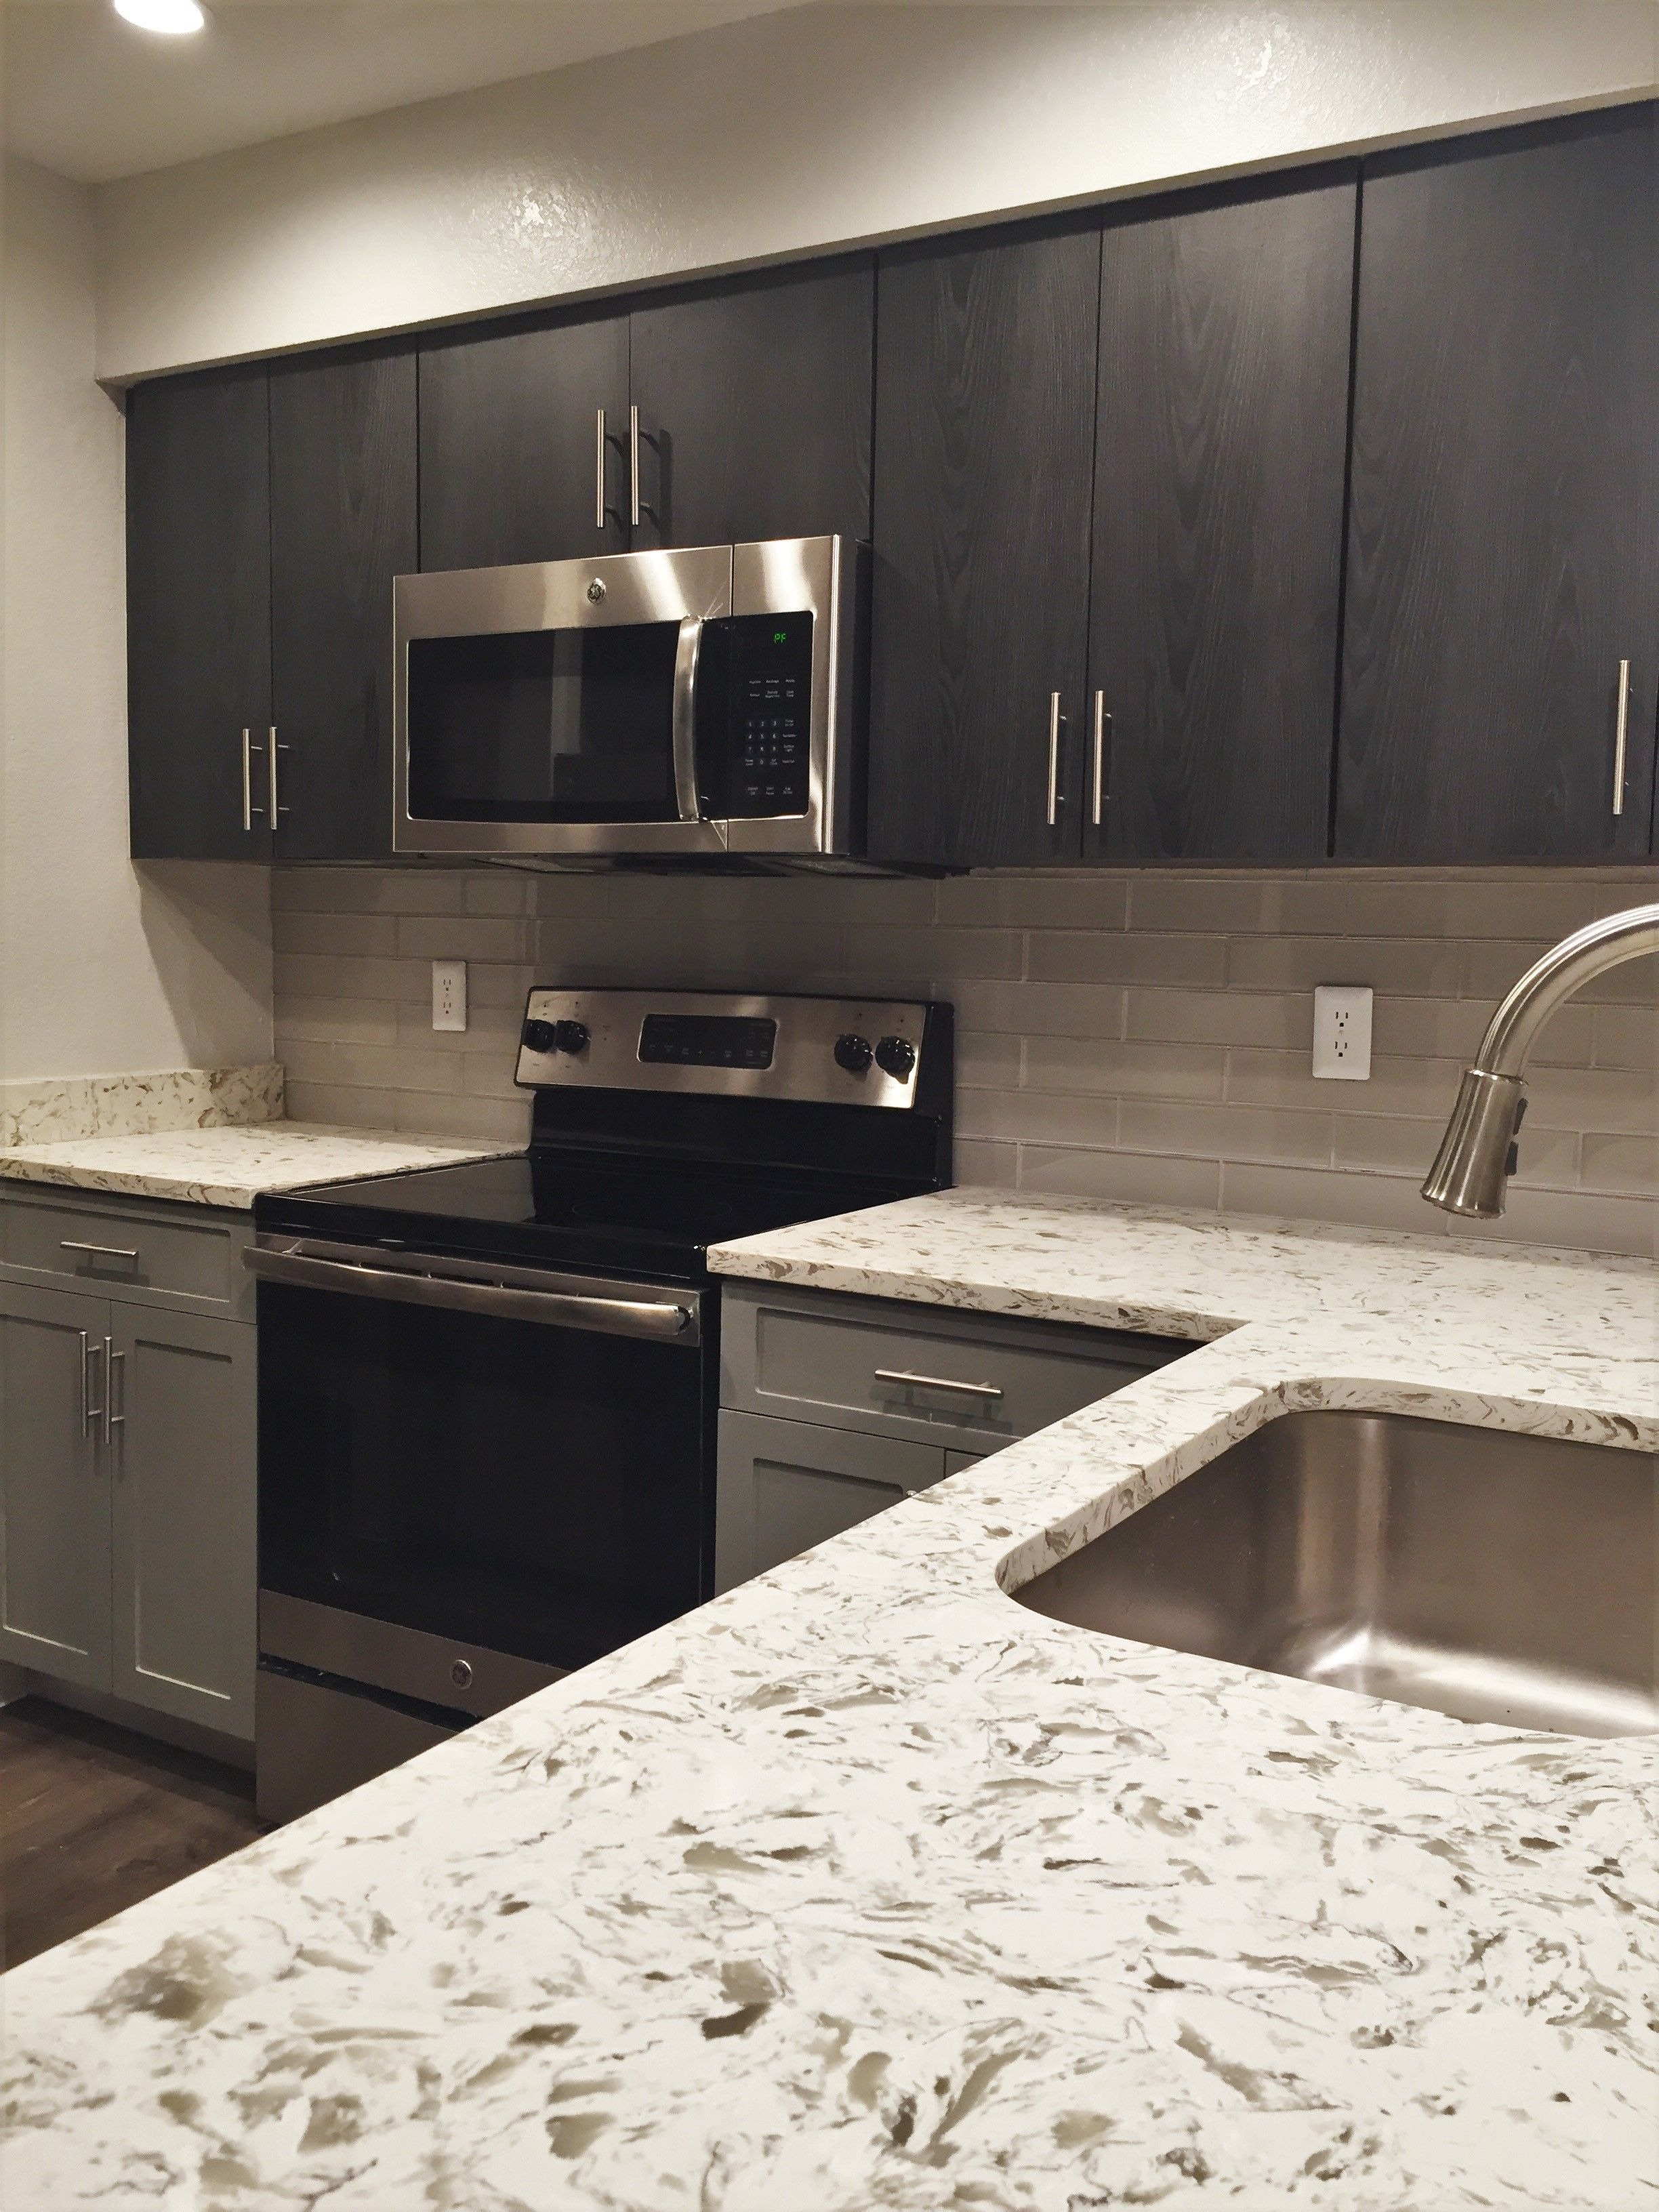 Tampa Tampa Palms Apartments Usf Housing Mezzo Modern Apartment Apartments For Rent Tampa